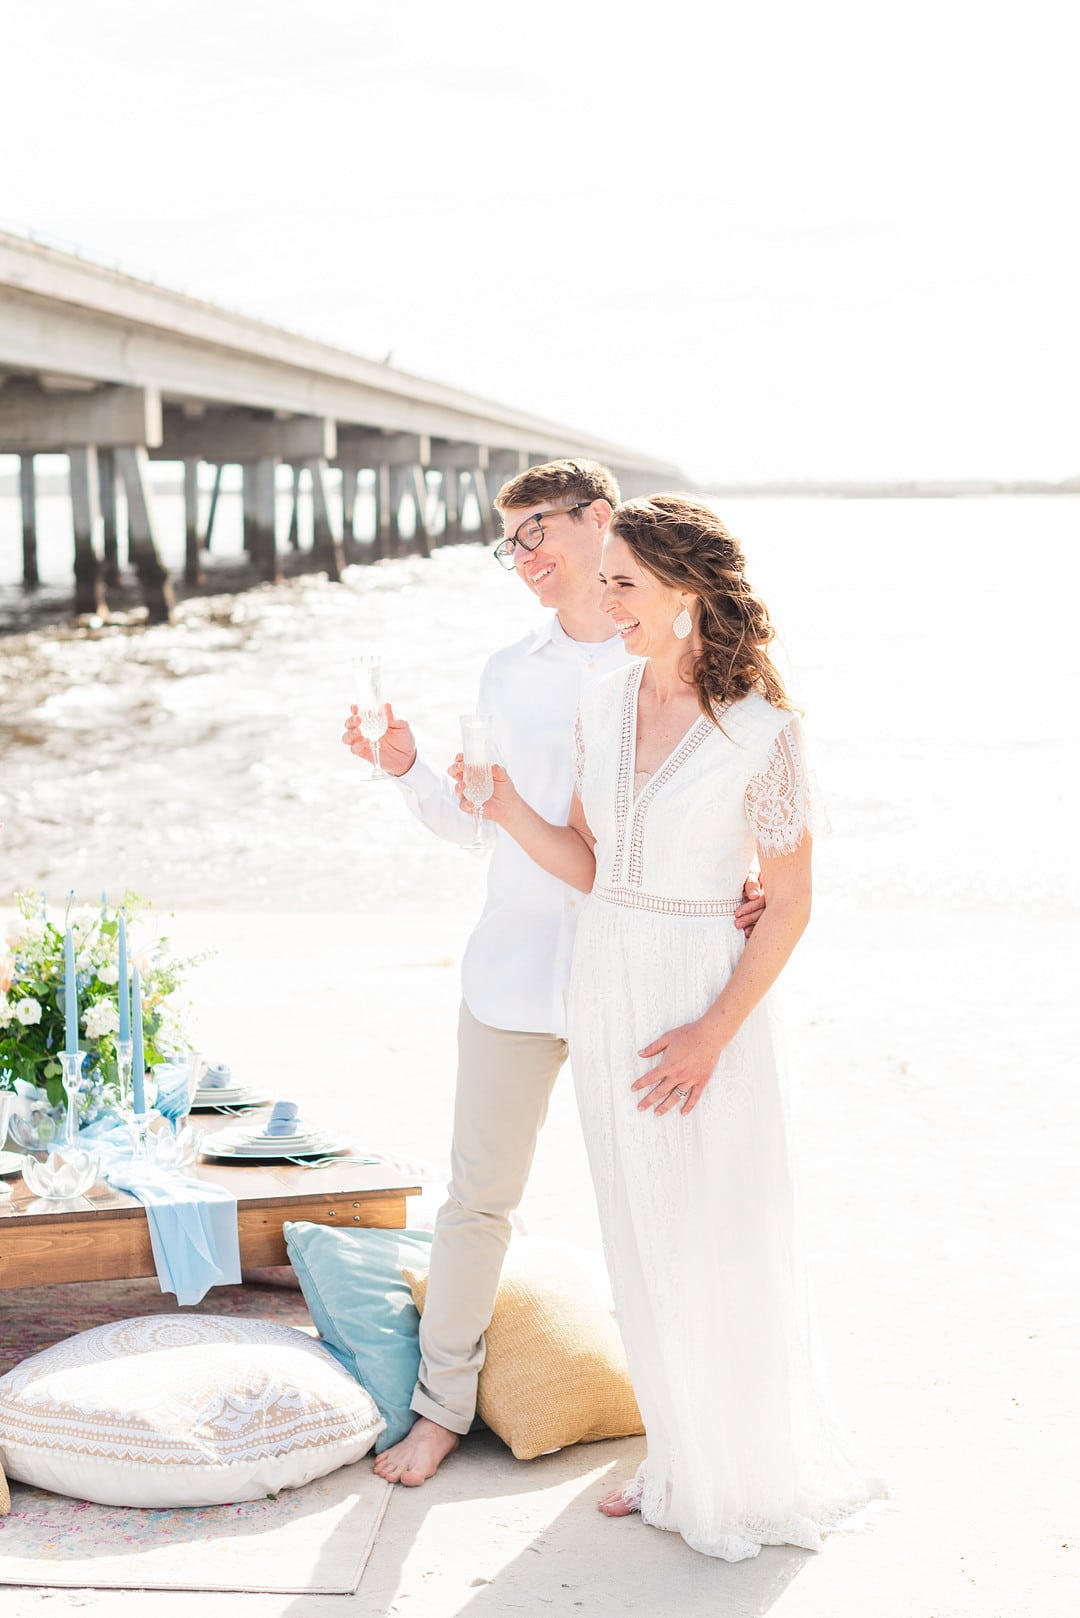 Romantic, Spring Styled Wedding with Horses on the Beach_Christine Austin Photography_©christineaustinphotography_2021_RomanticBeachStyledShoot_Austin+Naomi_59_low